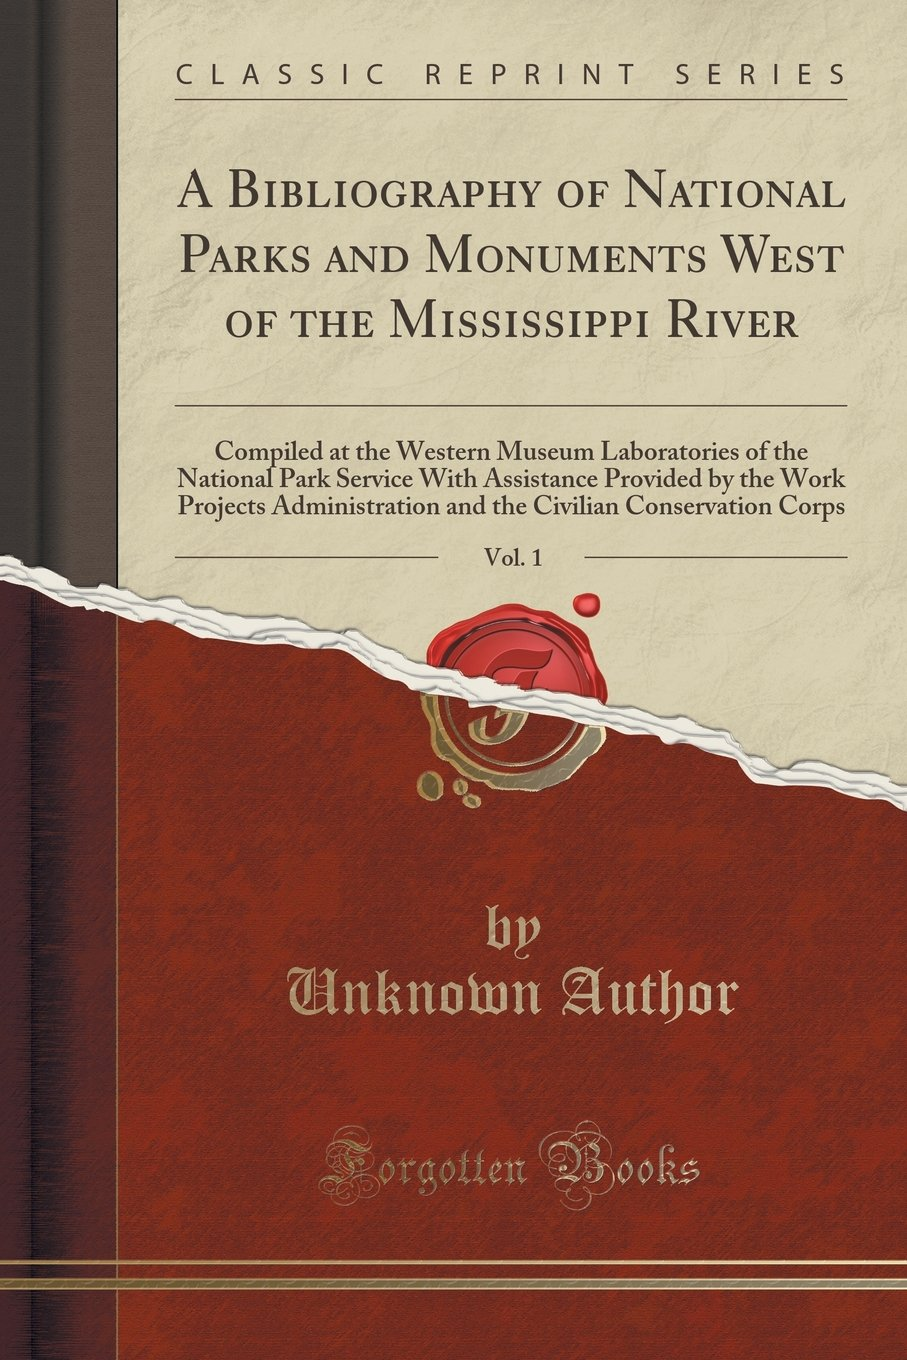 Read Online A Bibliography of National Parks and Monuments West of the Mississippi River, Vol. 1: Compiled at the Western Museum Laboratories of the National Park ... and the Civilian Conservation Corps ebook